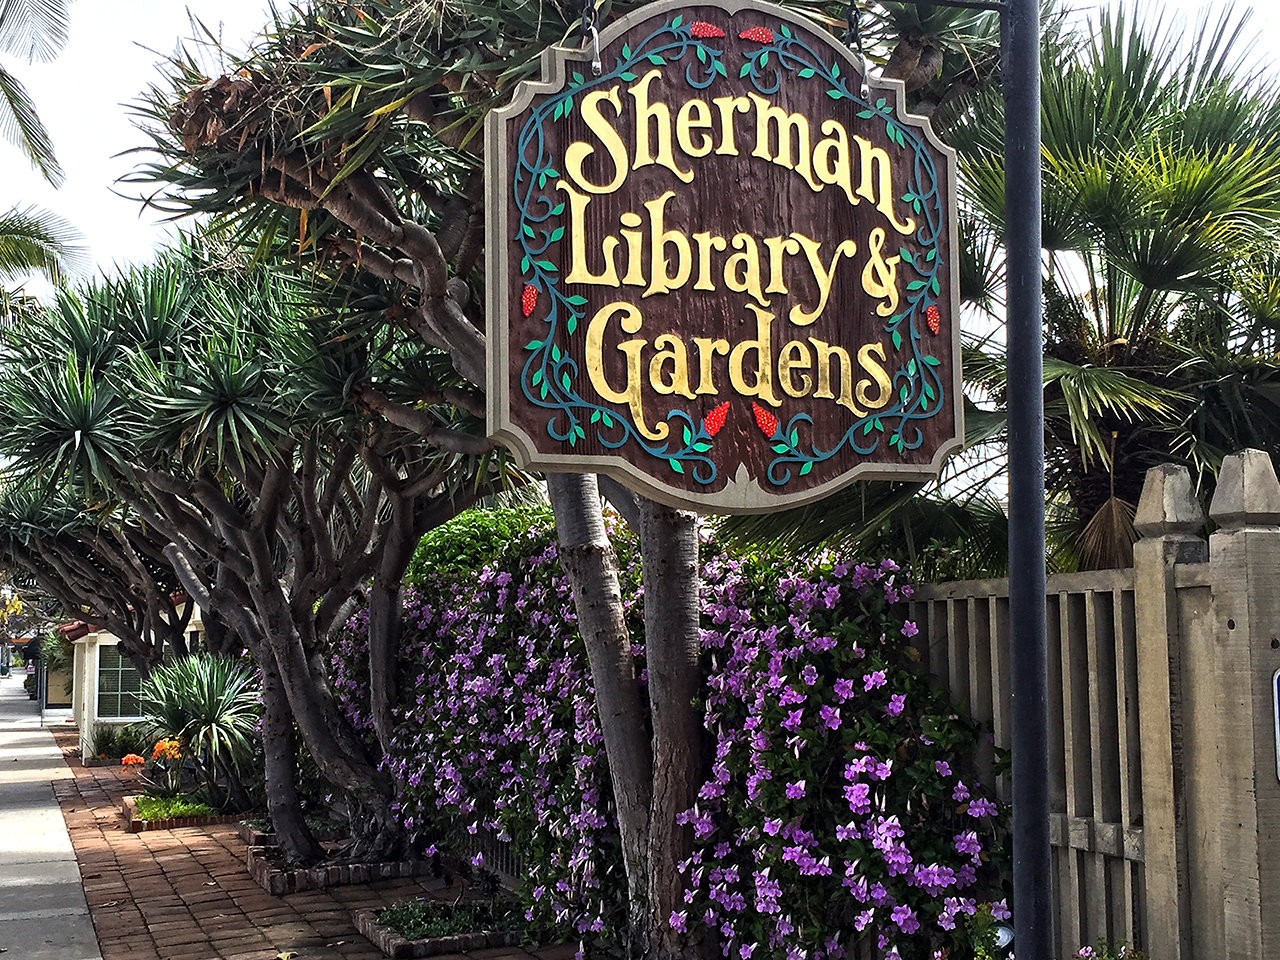 flowers and trees at the entrance to Sherman Library